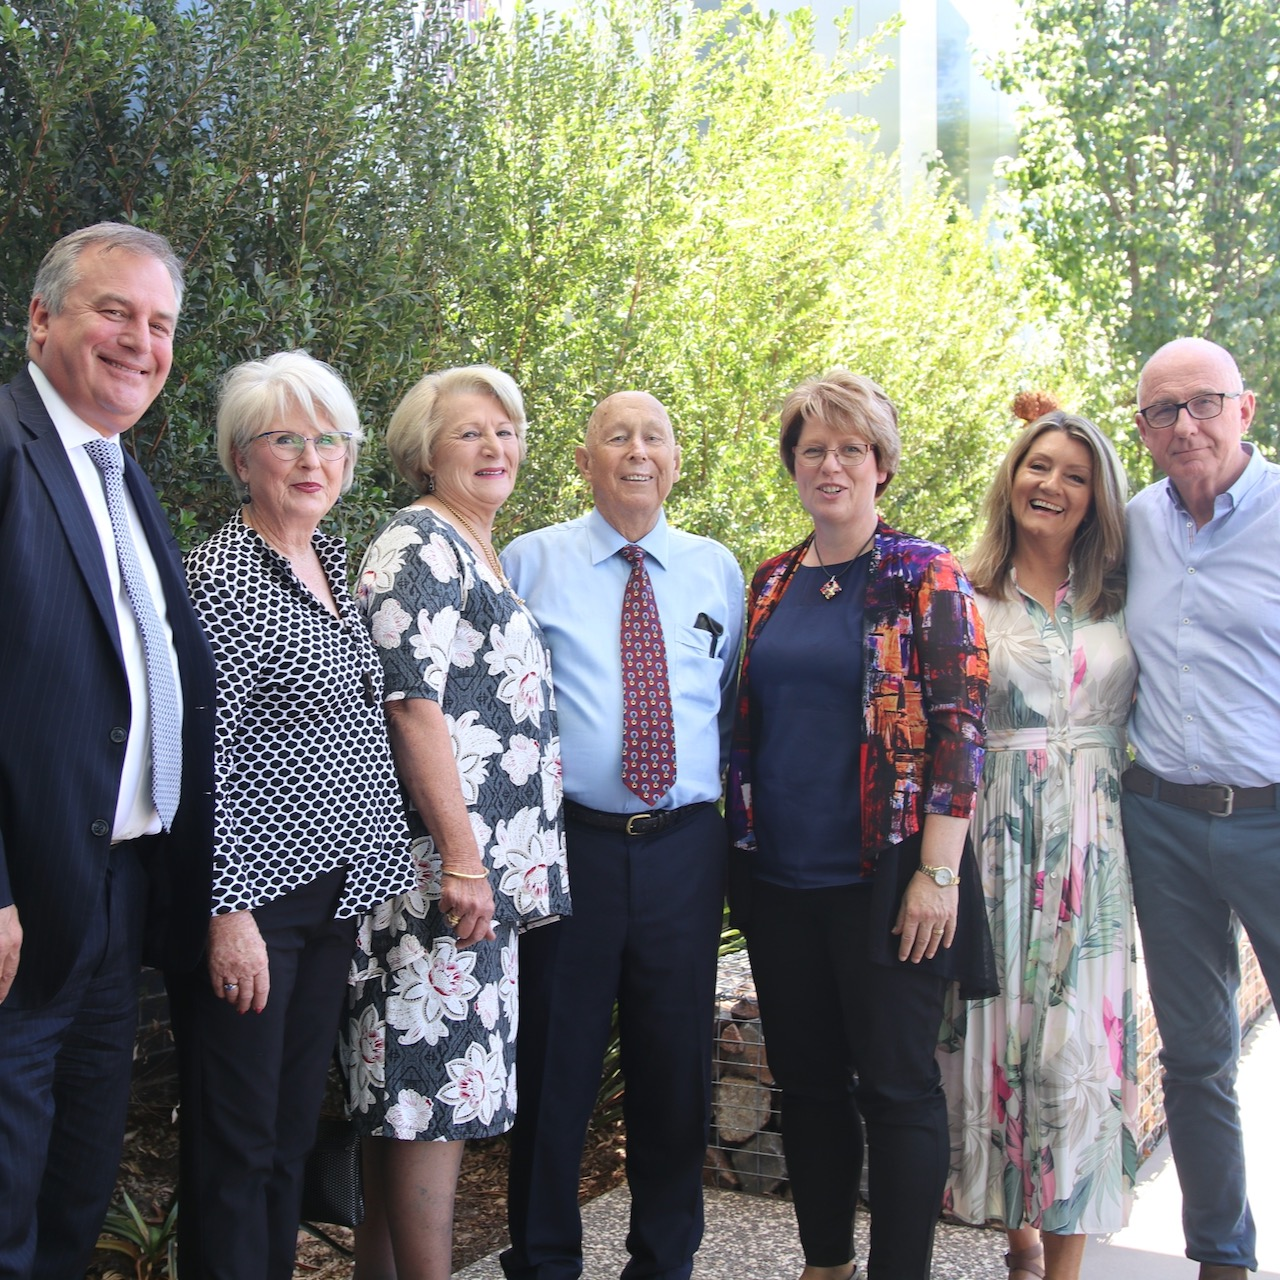 Professor Alex Zelinsky (University of Newcastle Vice-Chancellor and President), Carol Cooper (family), Lyn Morris (family), Bob Morris (family), Professor Jenny May (Director of University of Newcastle Department of Rural Health), Jenny Morris (family), and Peter Morris (family).